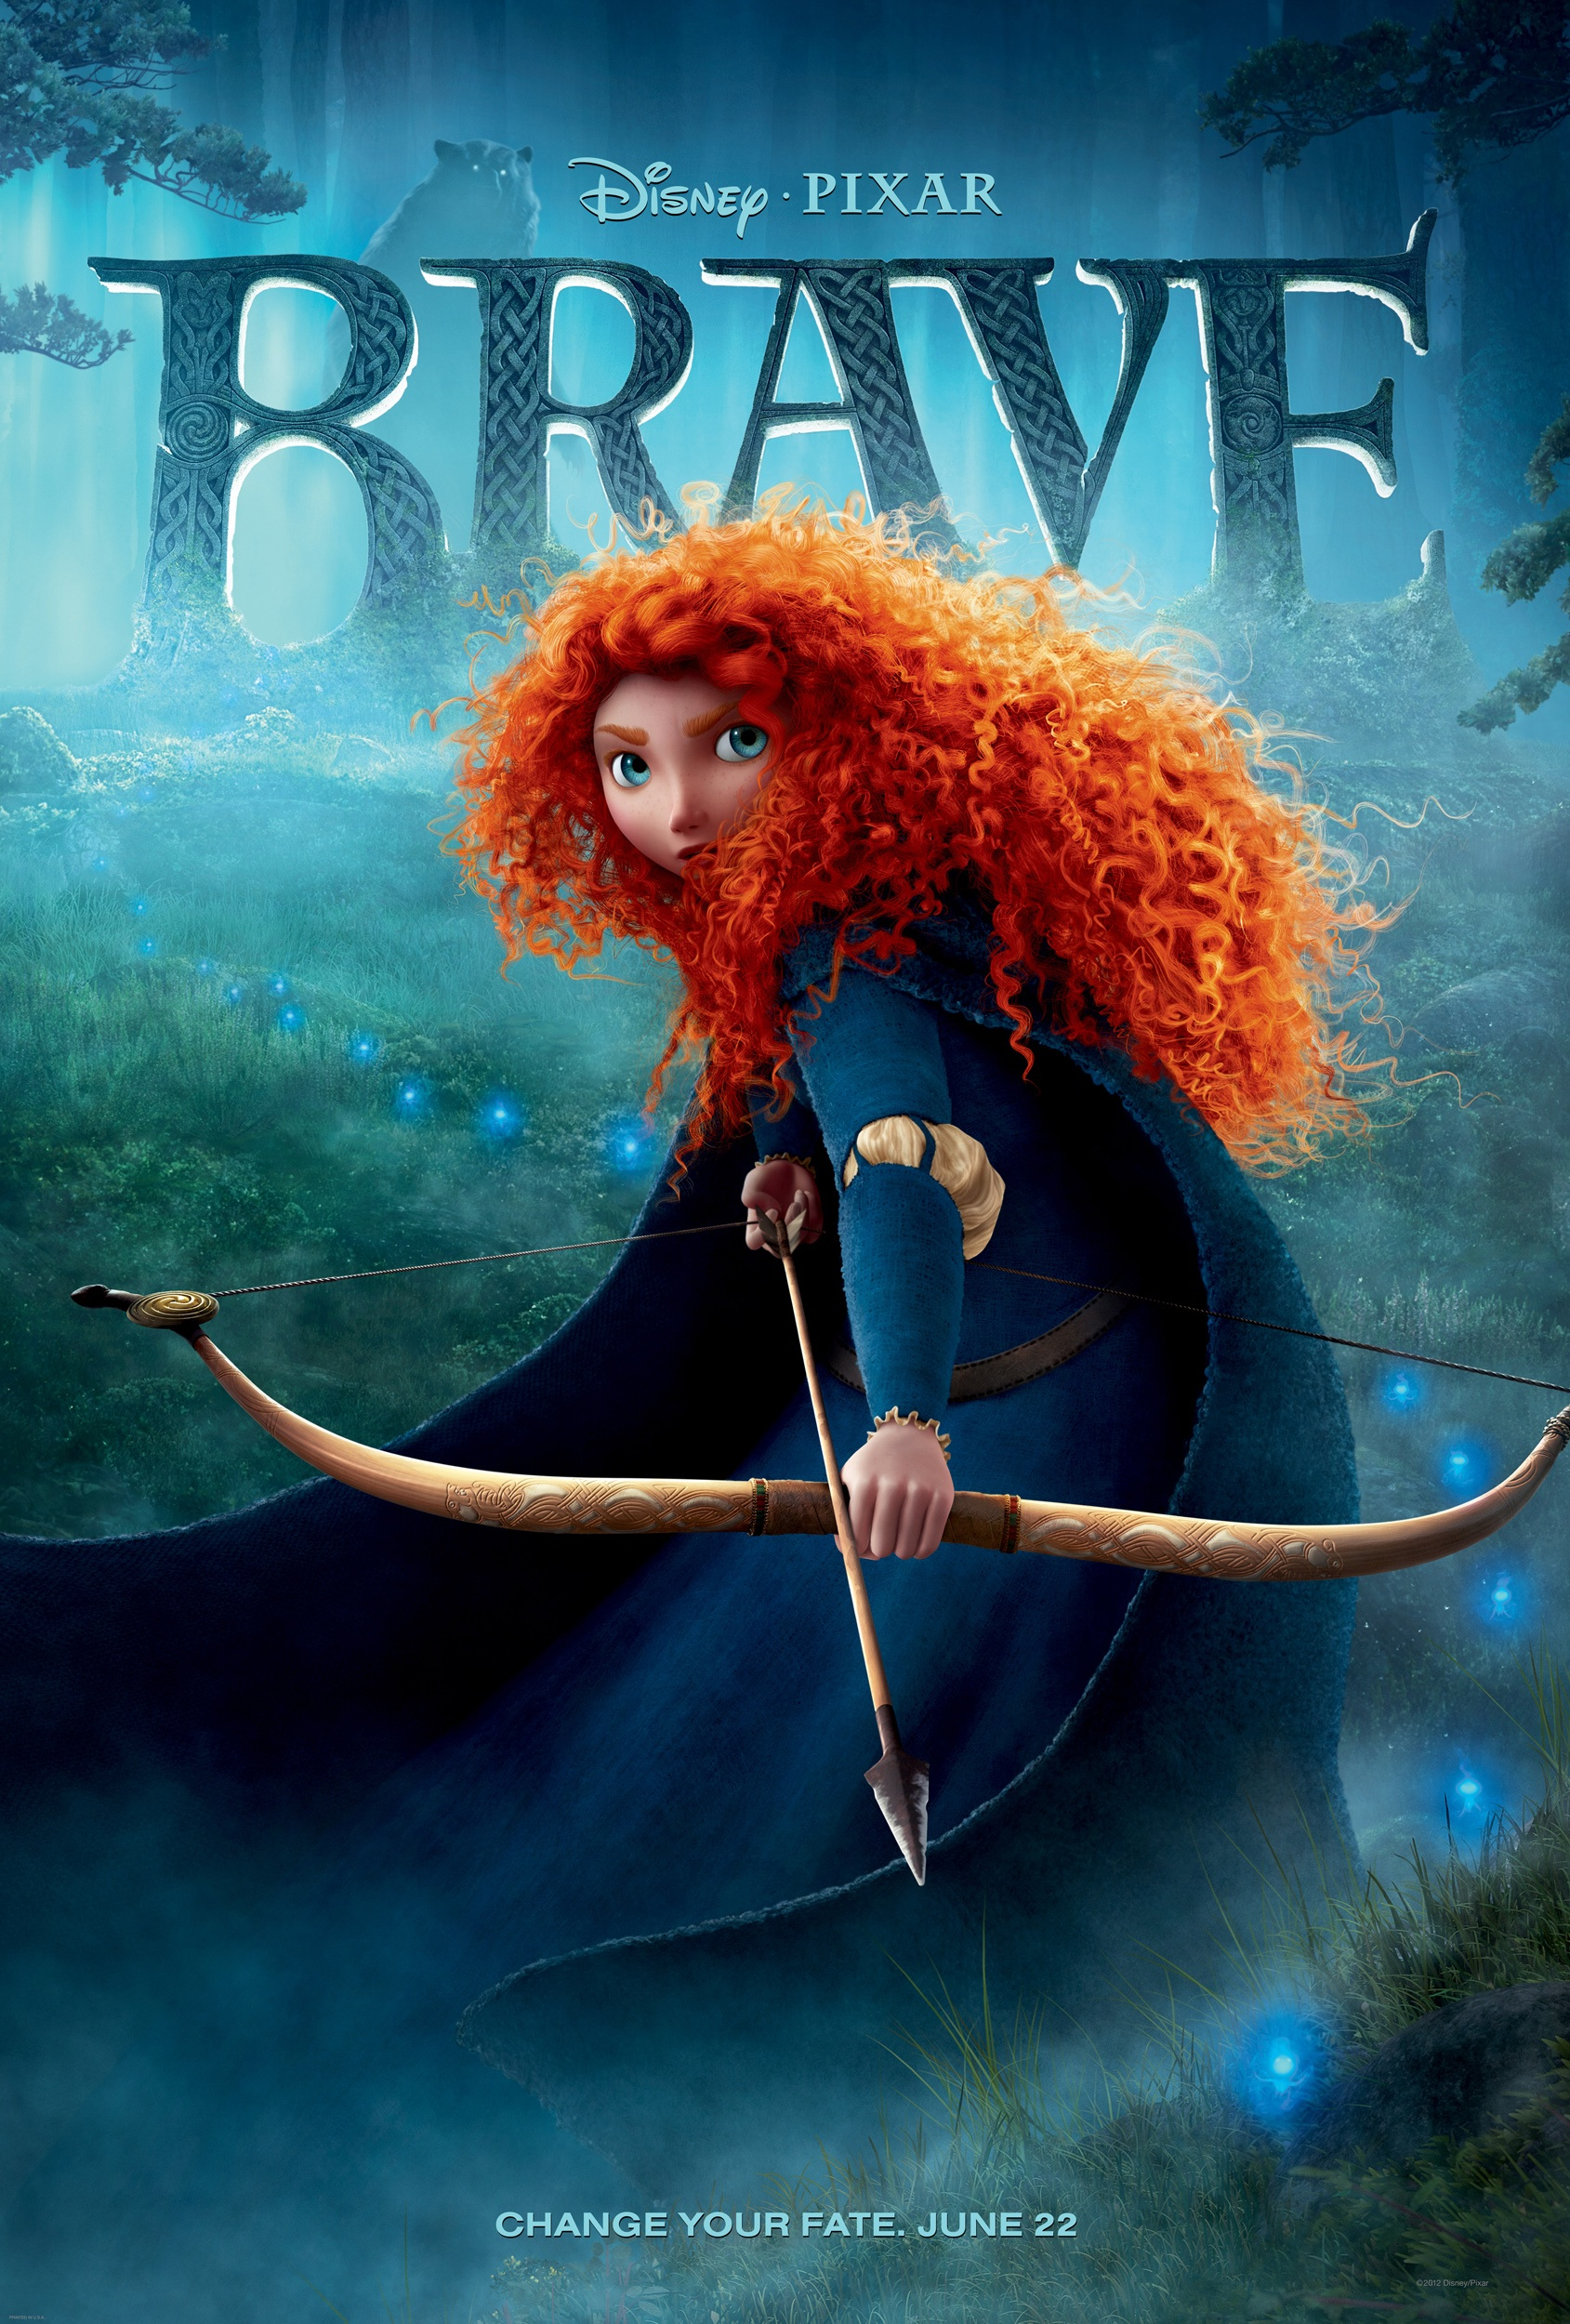 http://vignette2.wikia.nocookie.net/disney/images/0/07/Brave_poster.jpg/revision/latest?cb=20141201050701